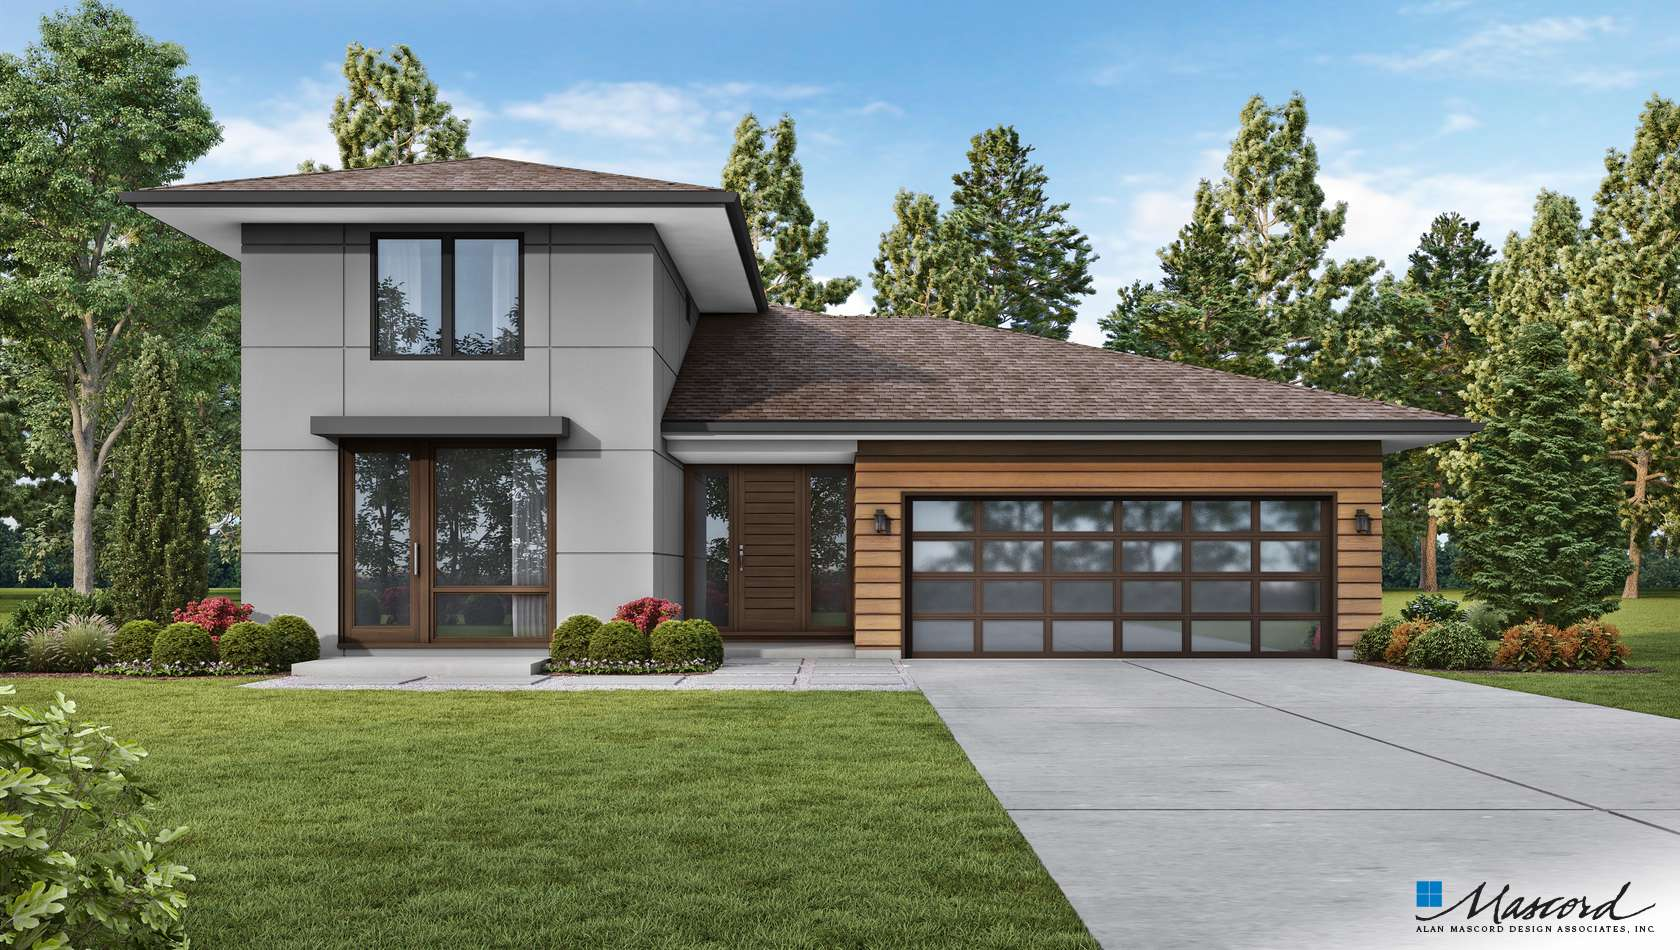 Main image for house plan 1260A: The Alameda South